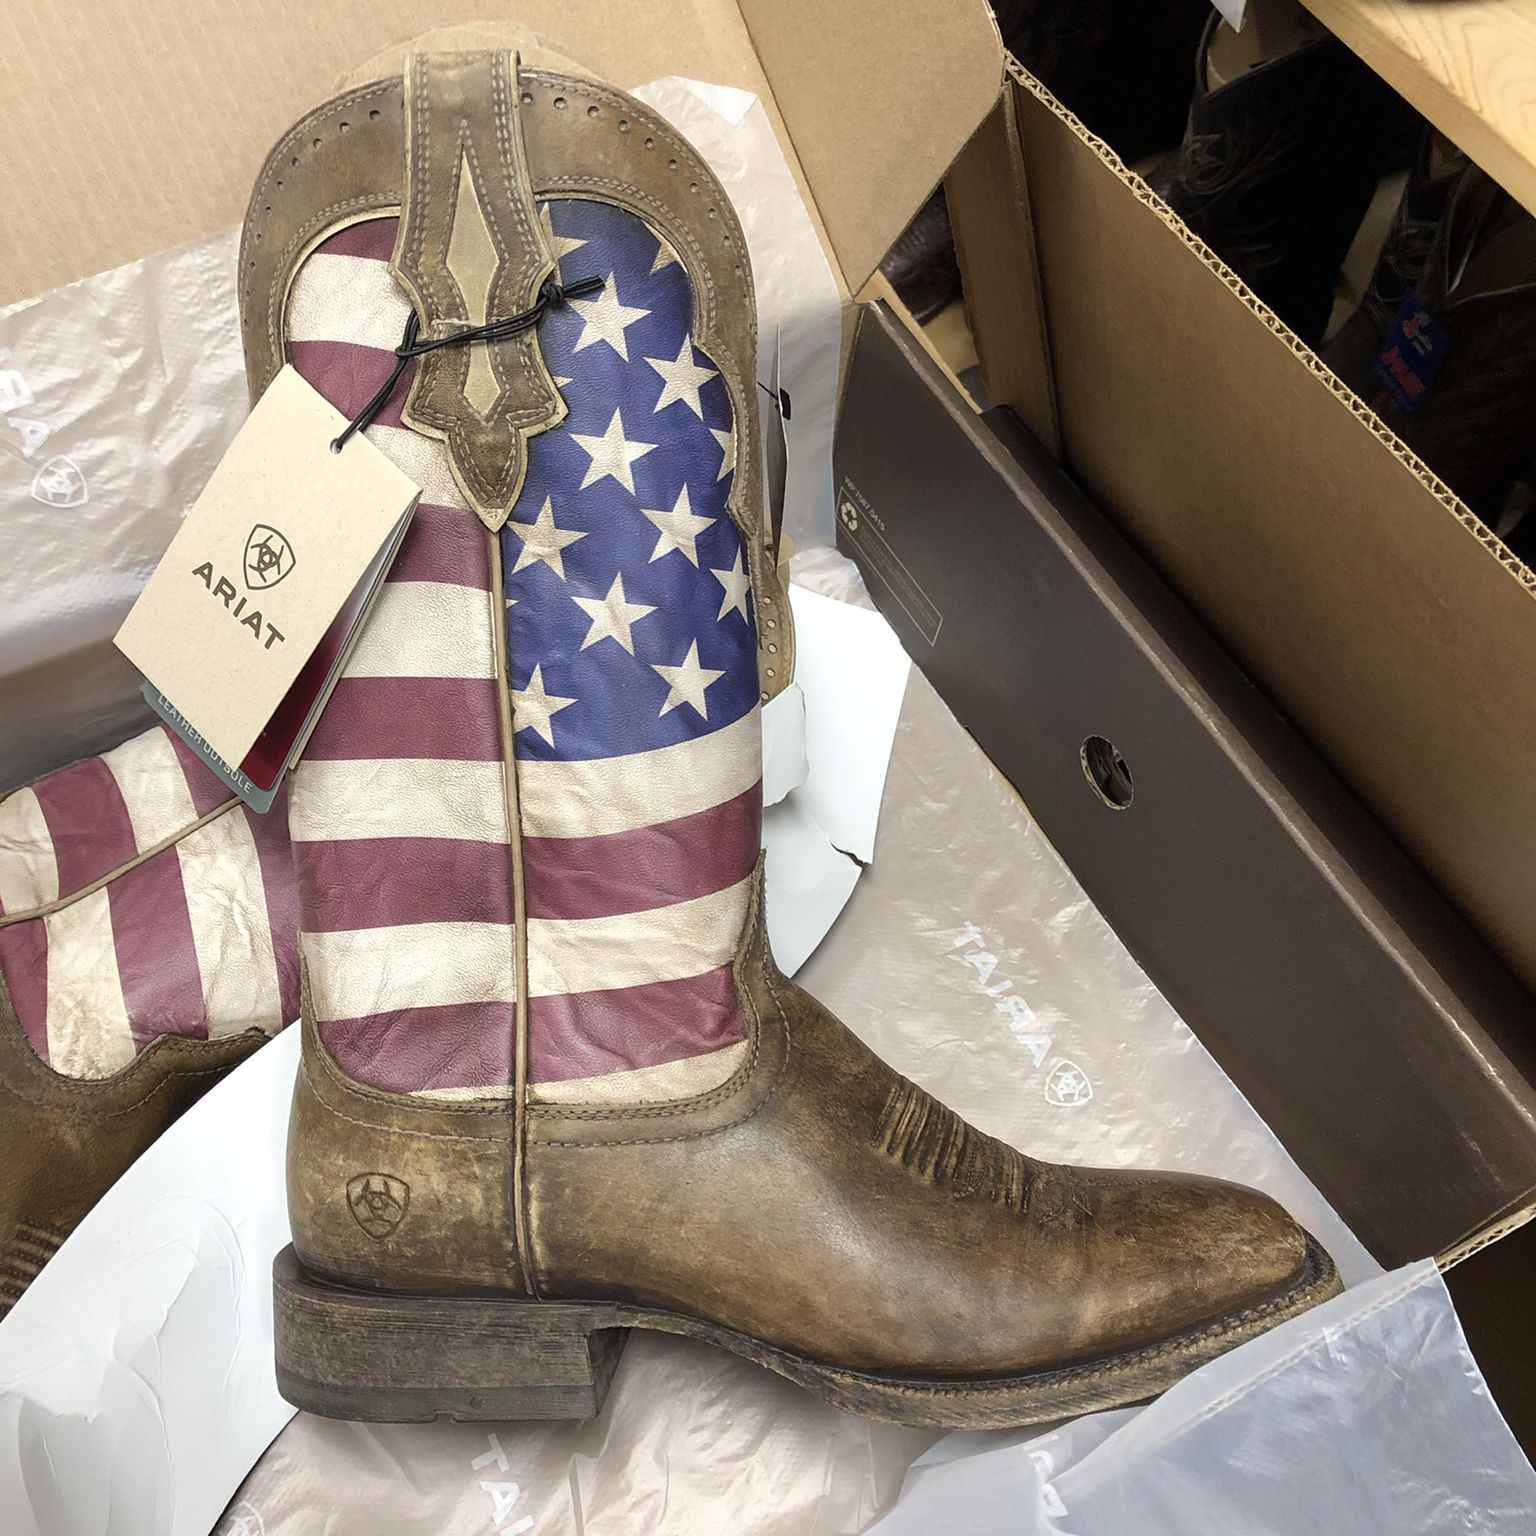 840d77e02c0 Ariat Men's Ranchero Stars and Stripes- Naturally Distressed Brown ...